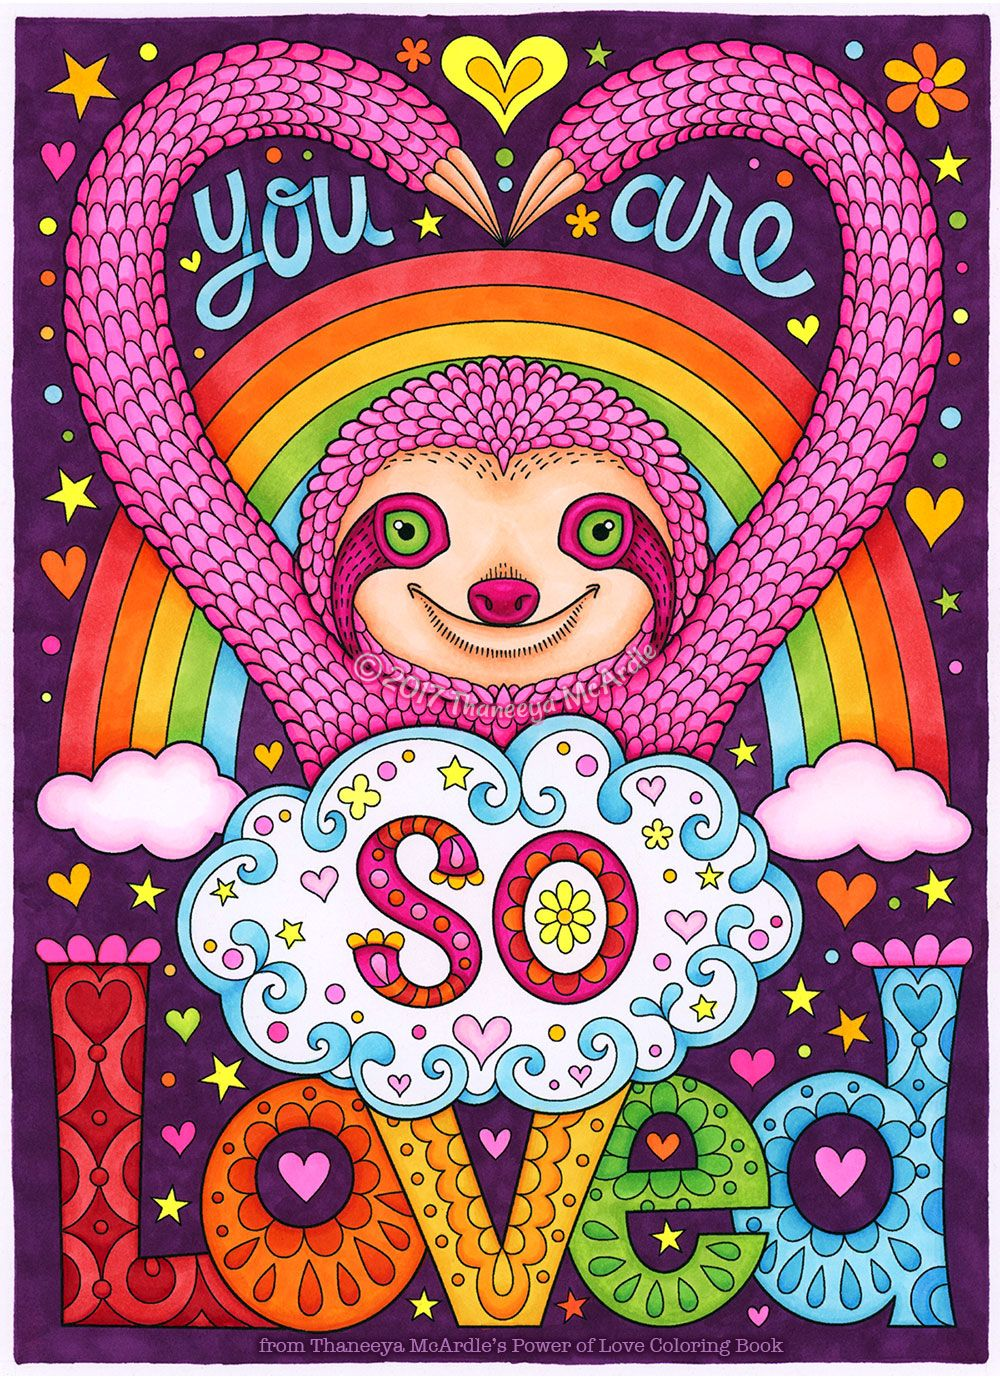 You Are So Loved Rainbow Sloth Coloring Page From Thaneeya McArdles Power Of Love